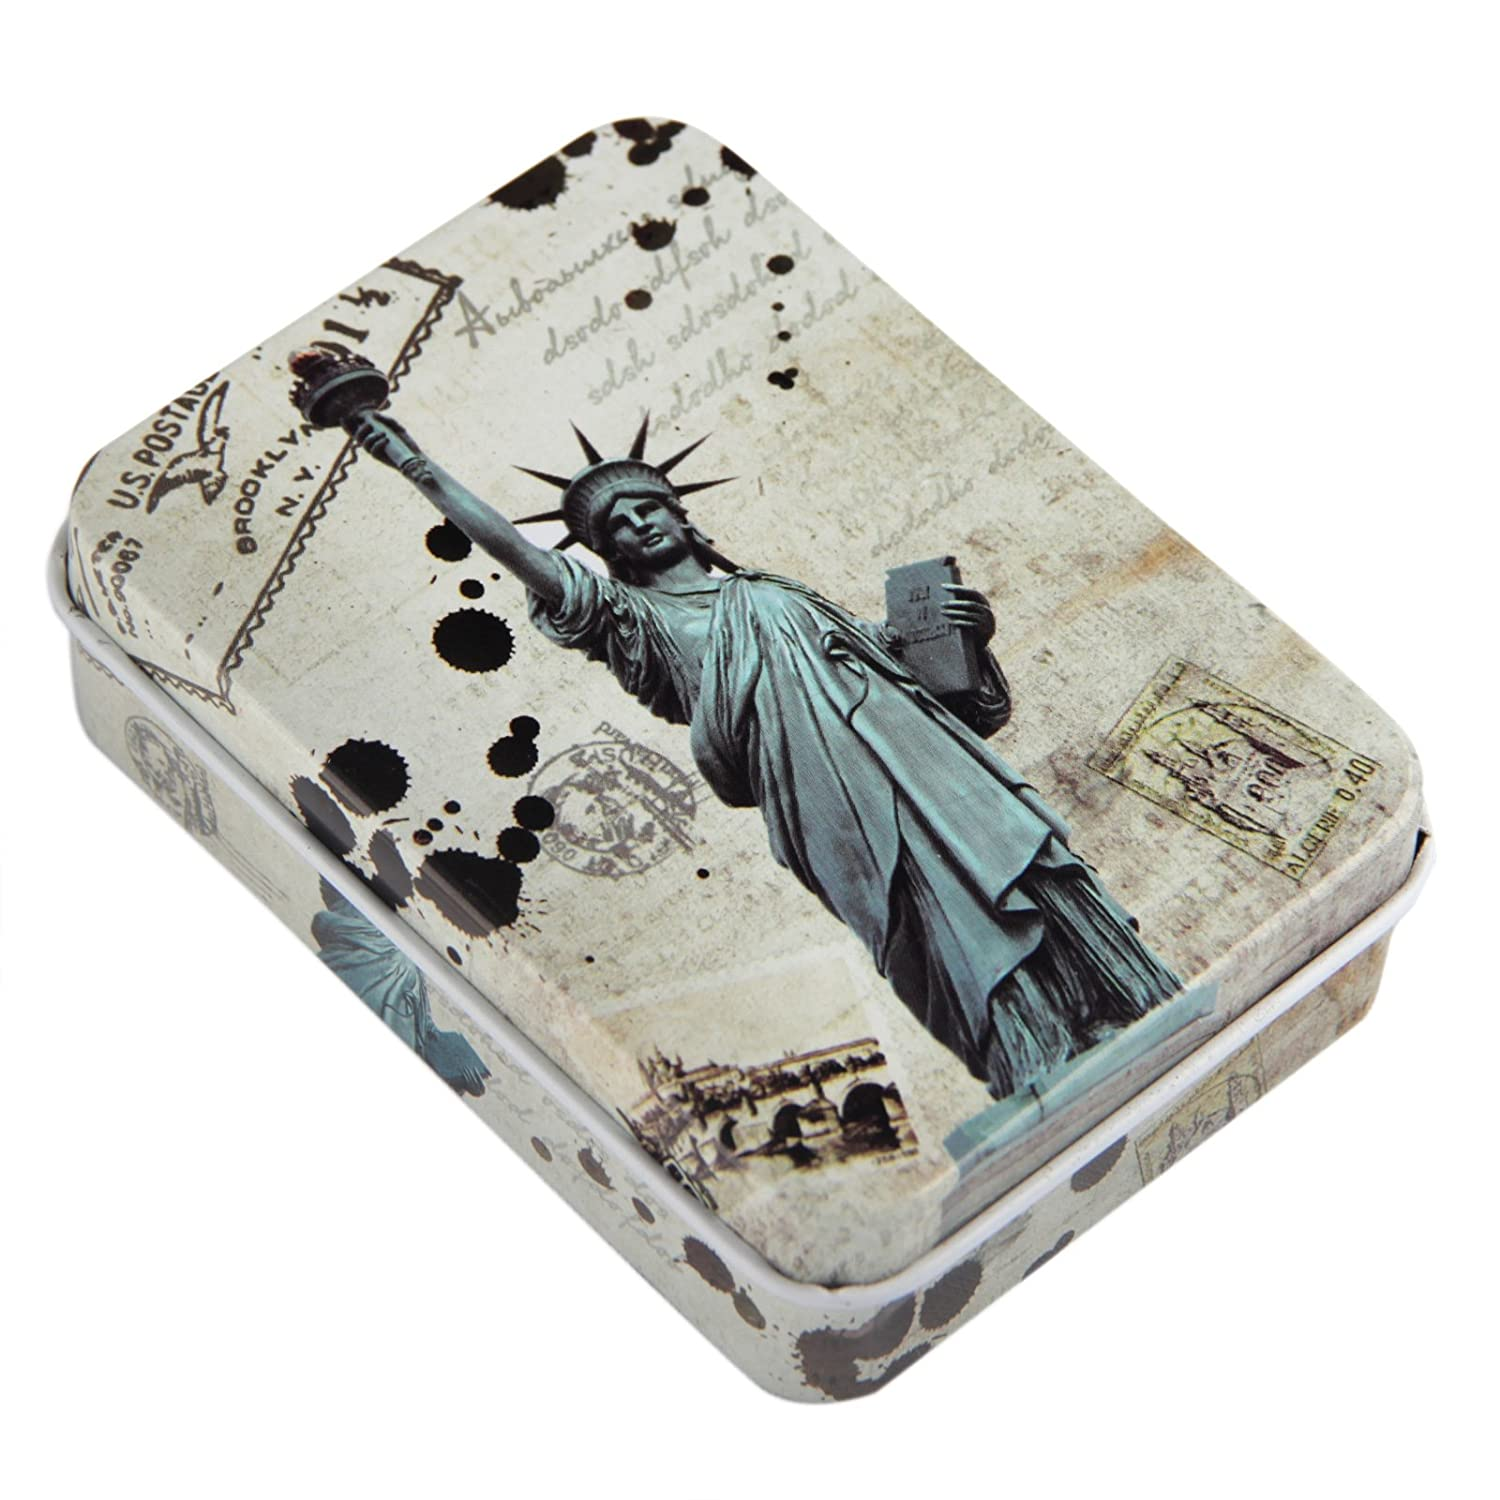 Matches Strike Almost Anywhere in Vintage Style Tin Container Hand Packed in USA Steve Kaeser Since 1989